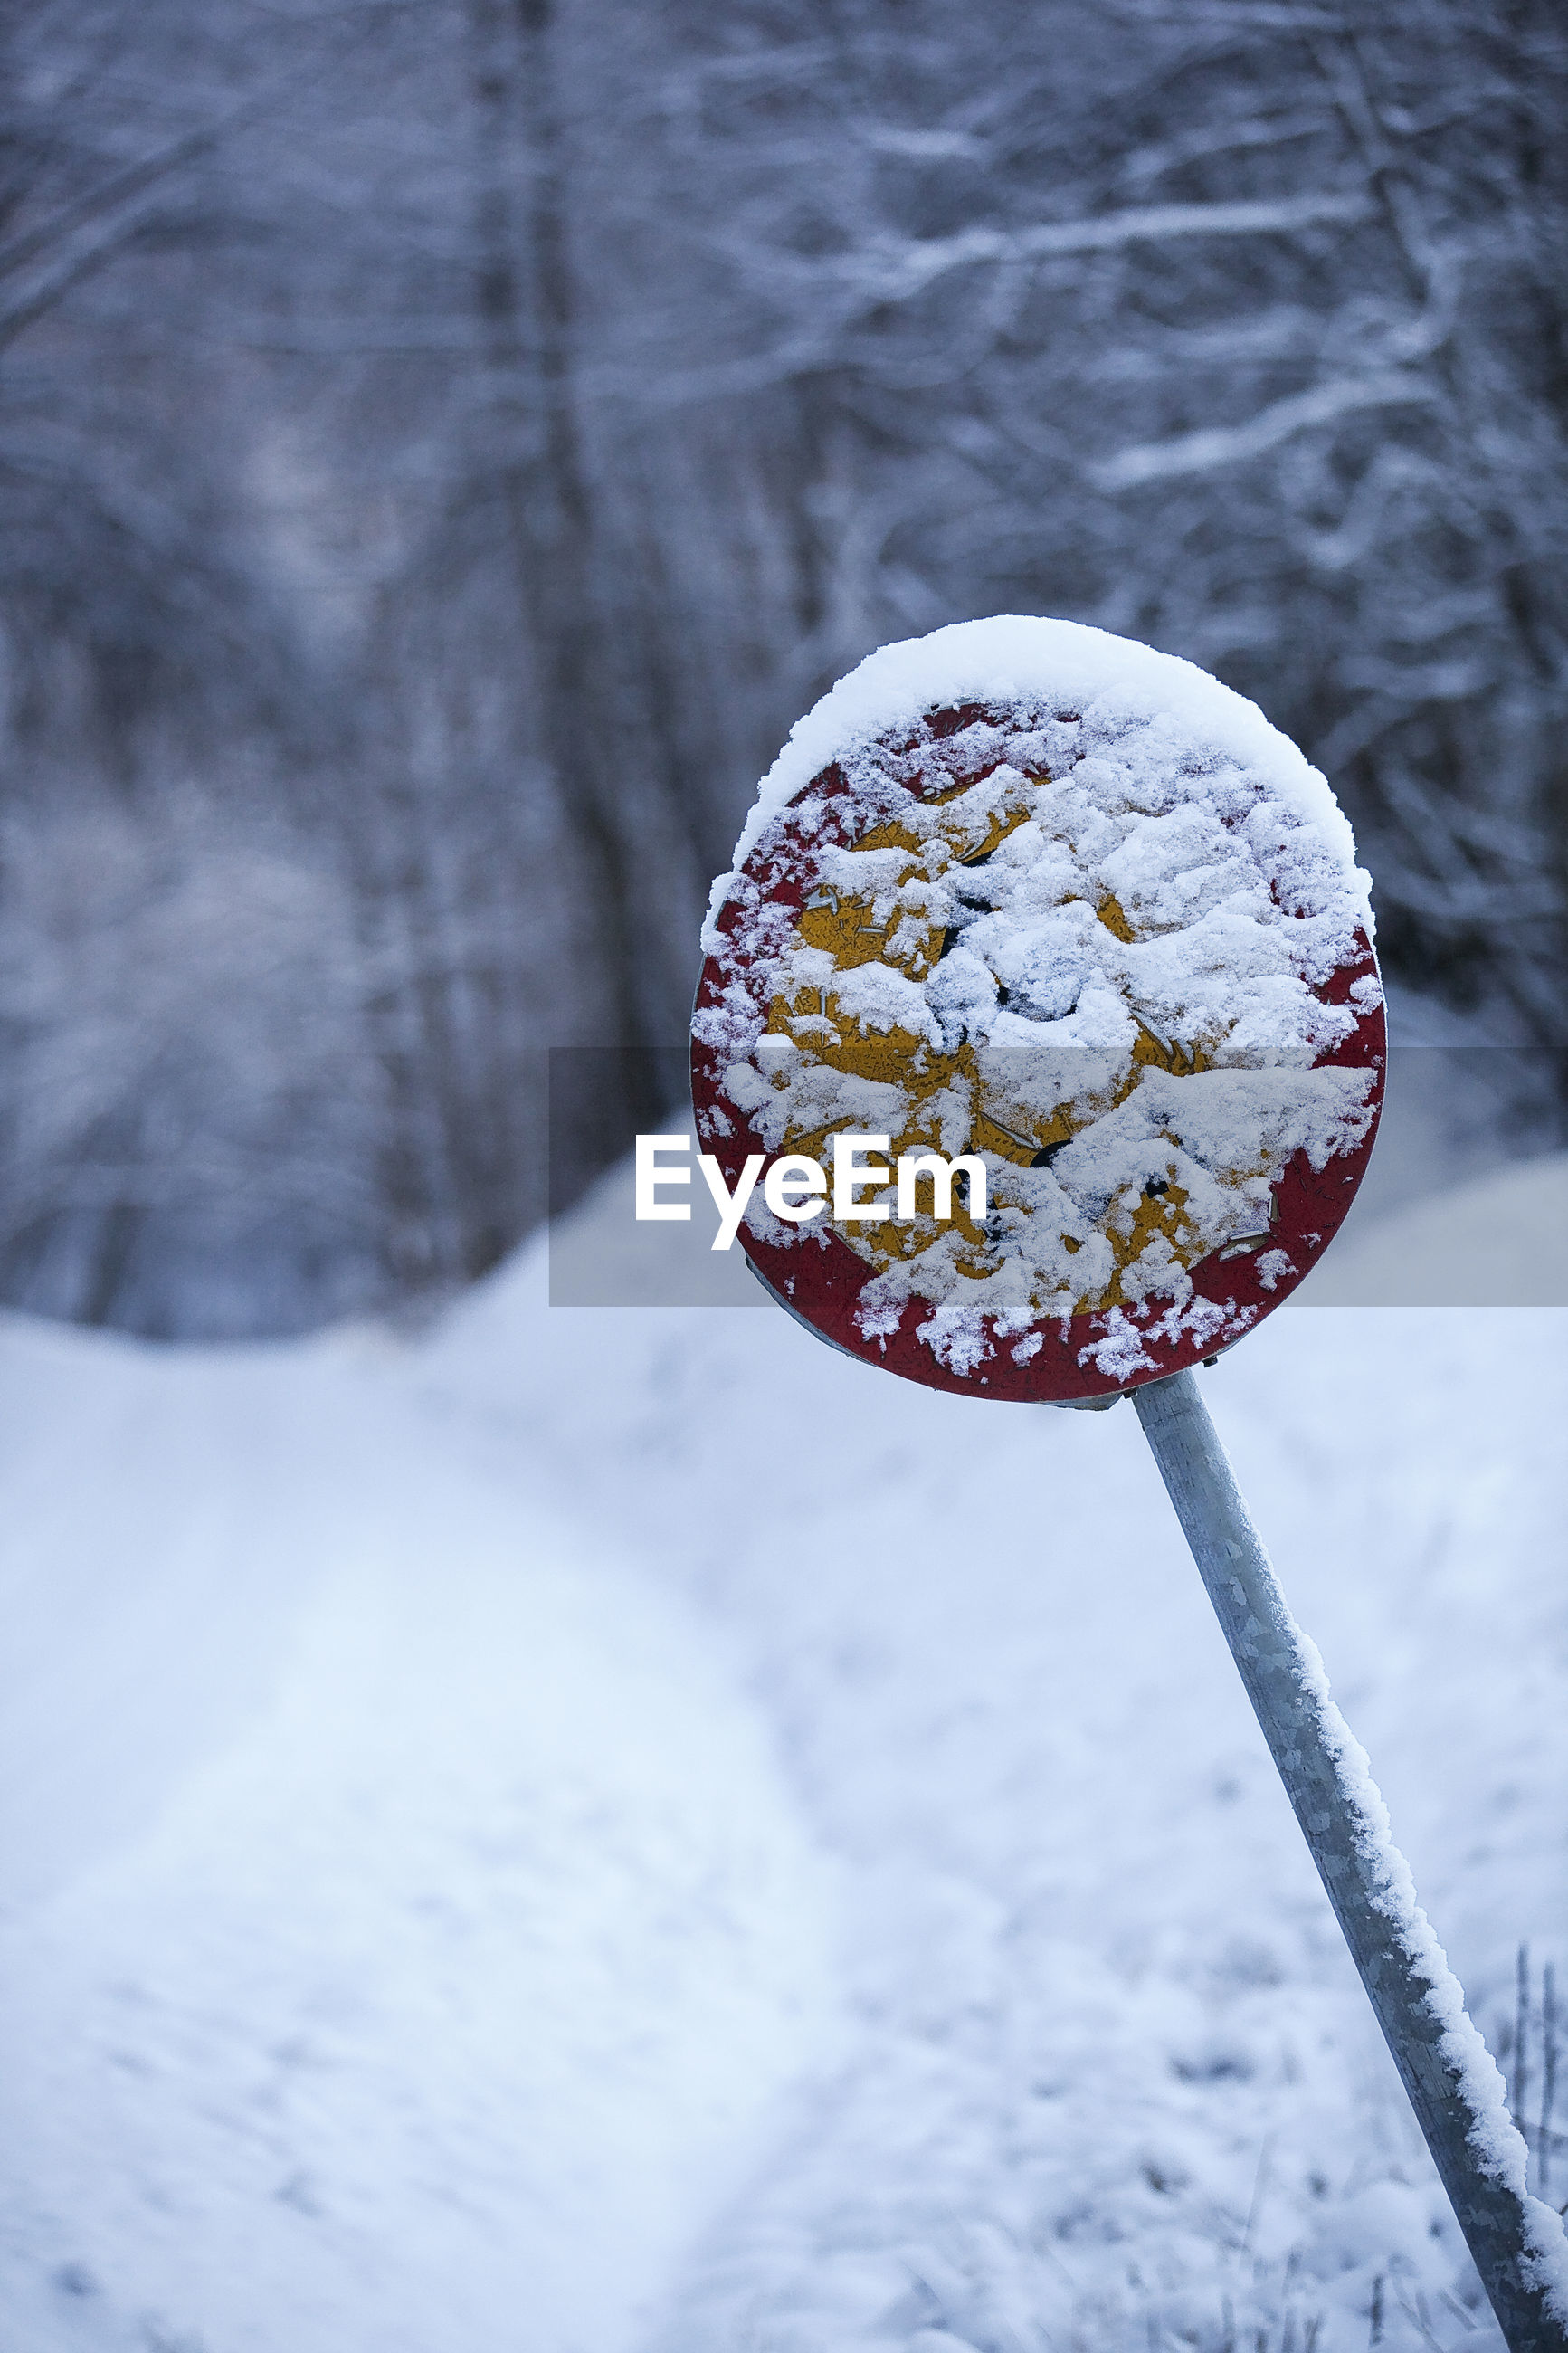 CLOSE-UP OF ICE CREAM AGAINST SNOW COVERED